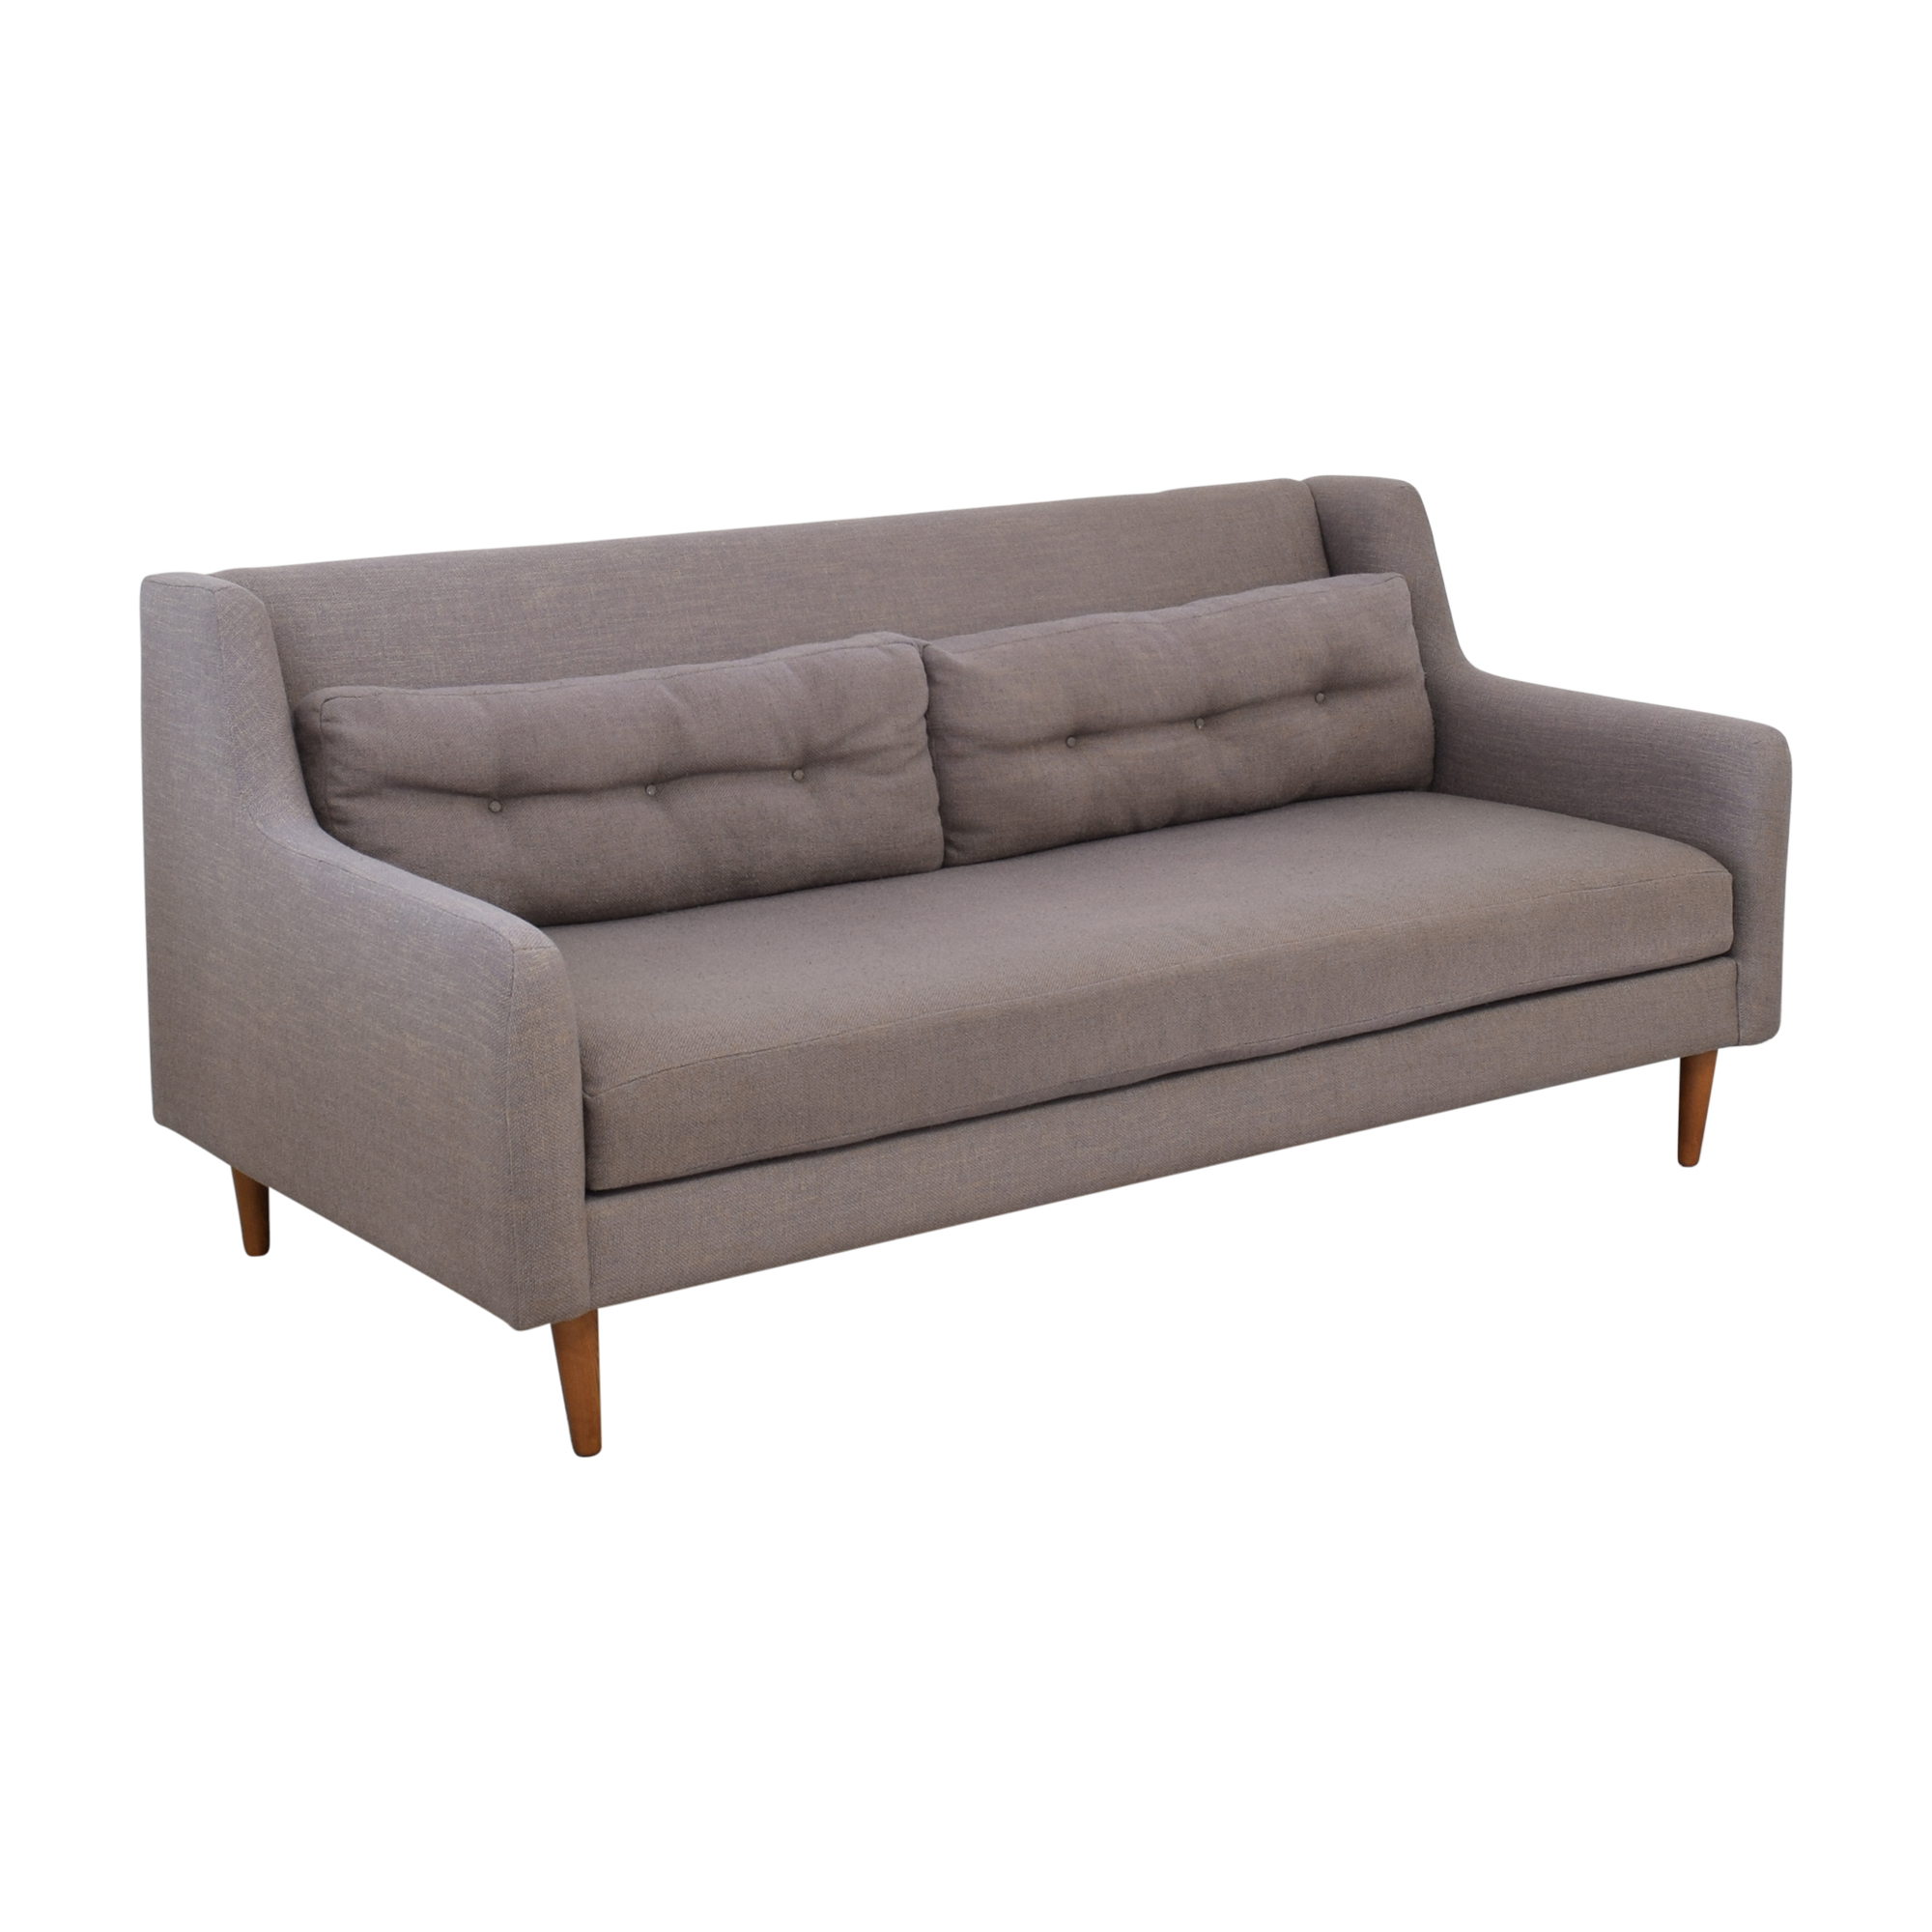 West Elm West Elm Crosby Sofa Sofas